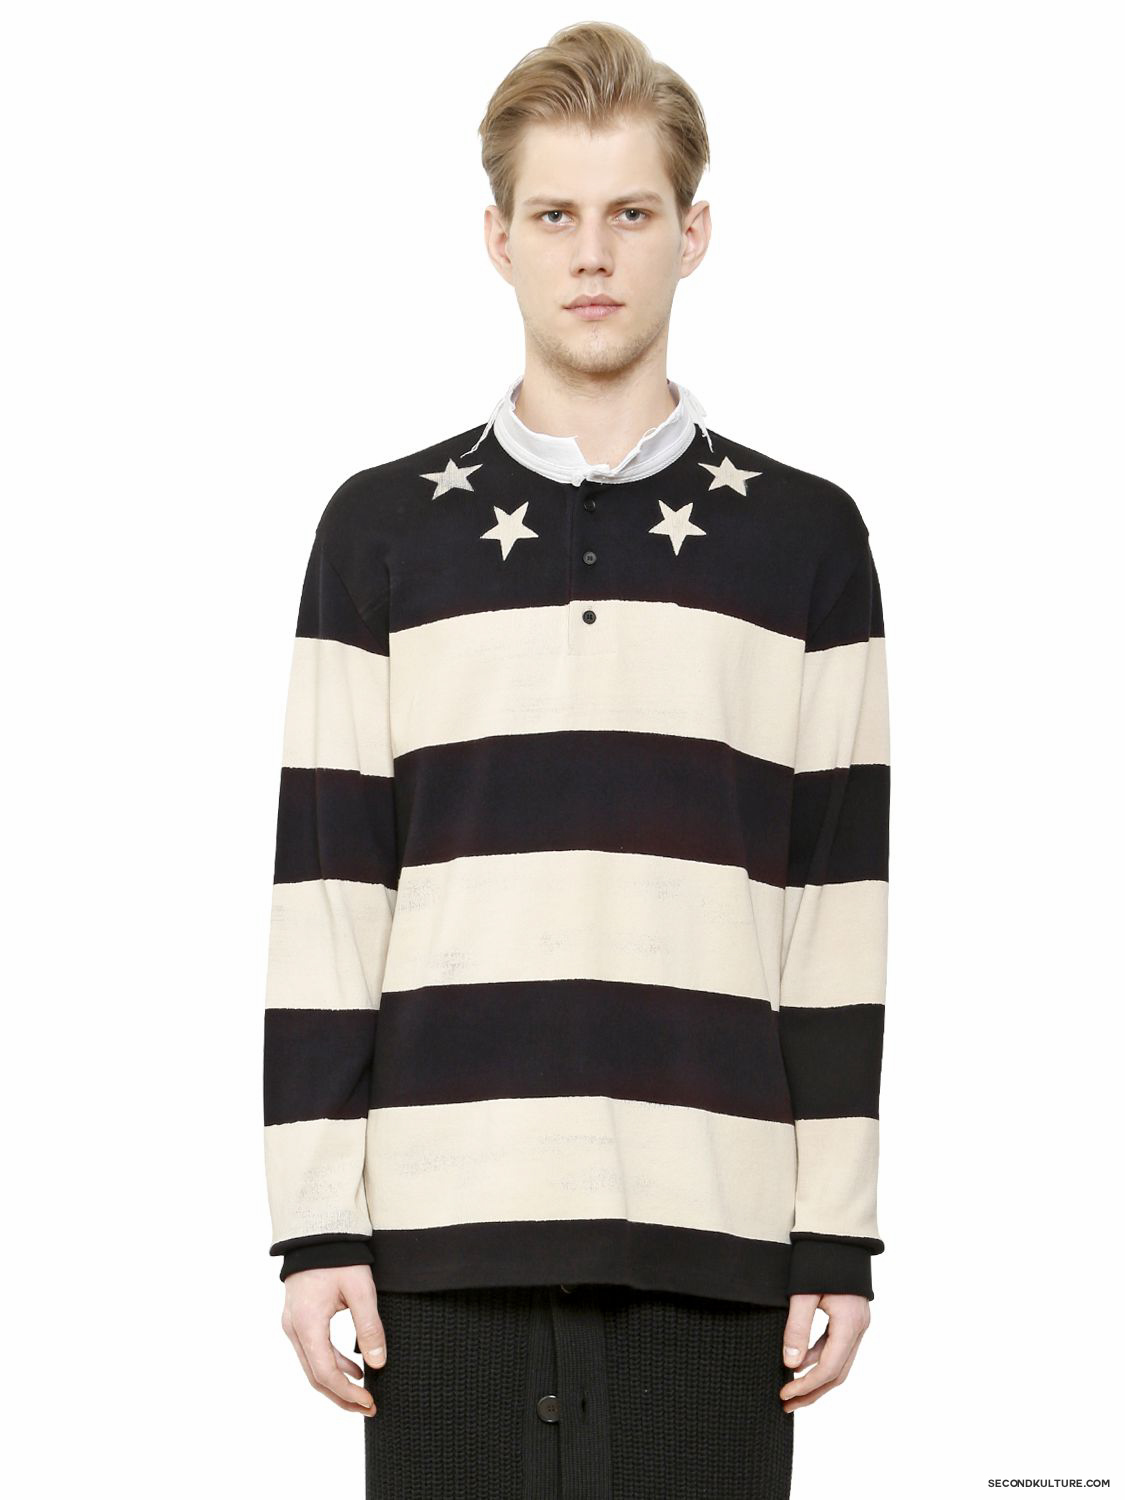 Givenchy-Stars-and-Stripes-Raw-Collar-Pique-Polo-Shirt-Fall-Winter-2015-1